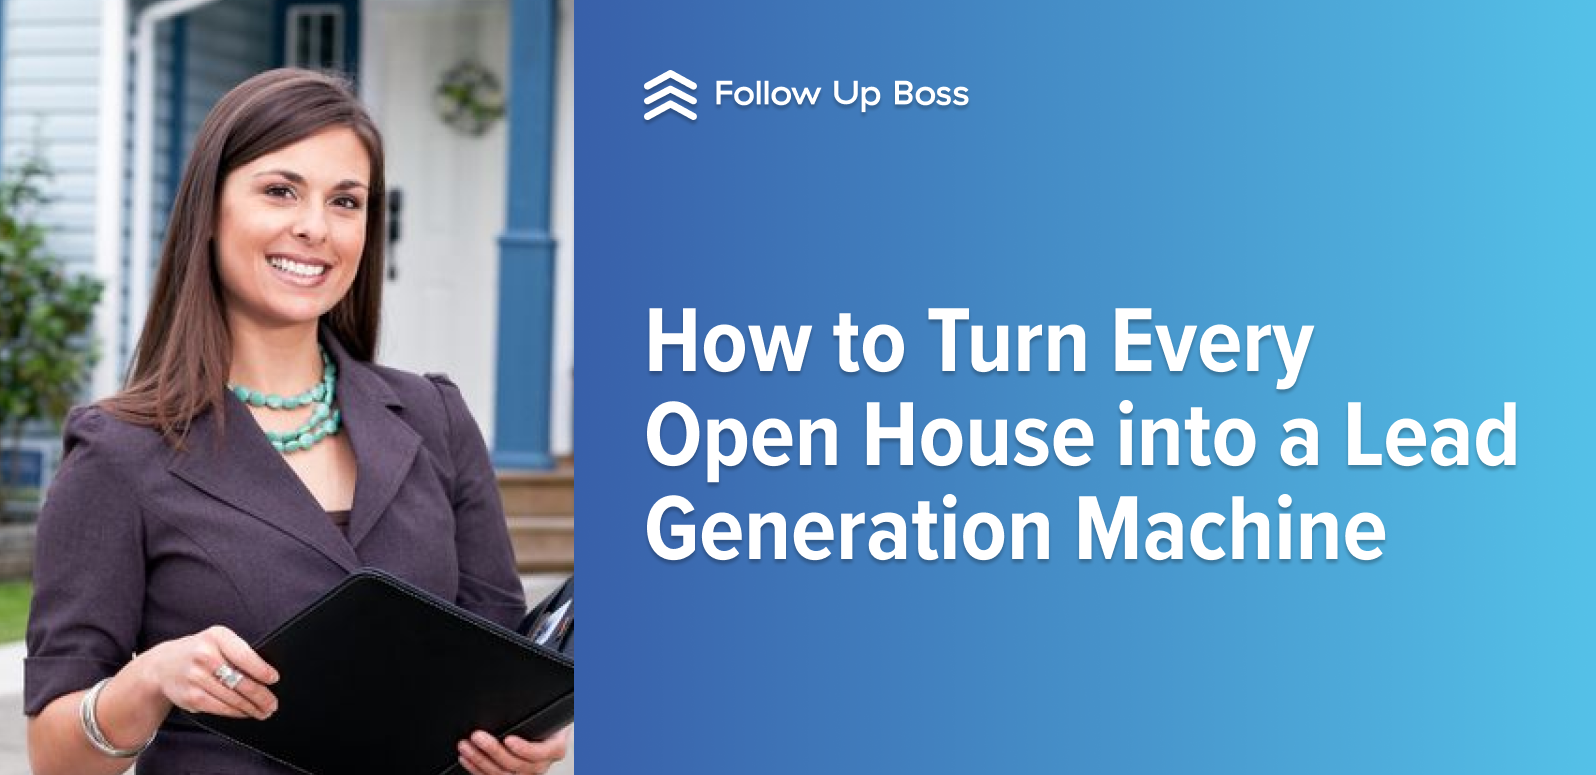 How to Turn Every Open House into a Lead Generation Machine